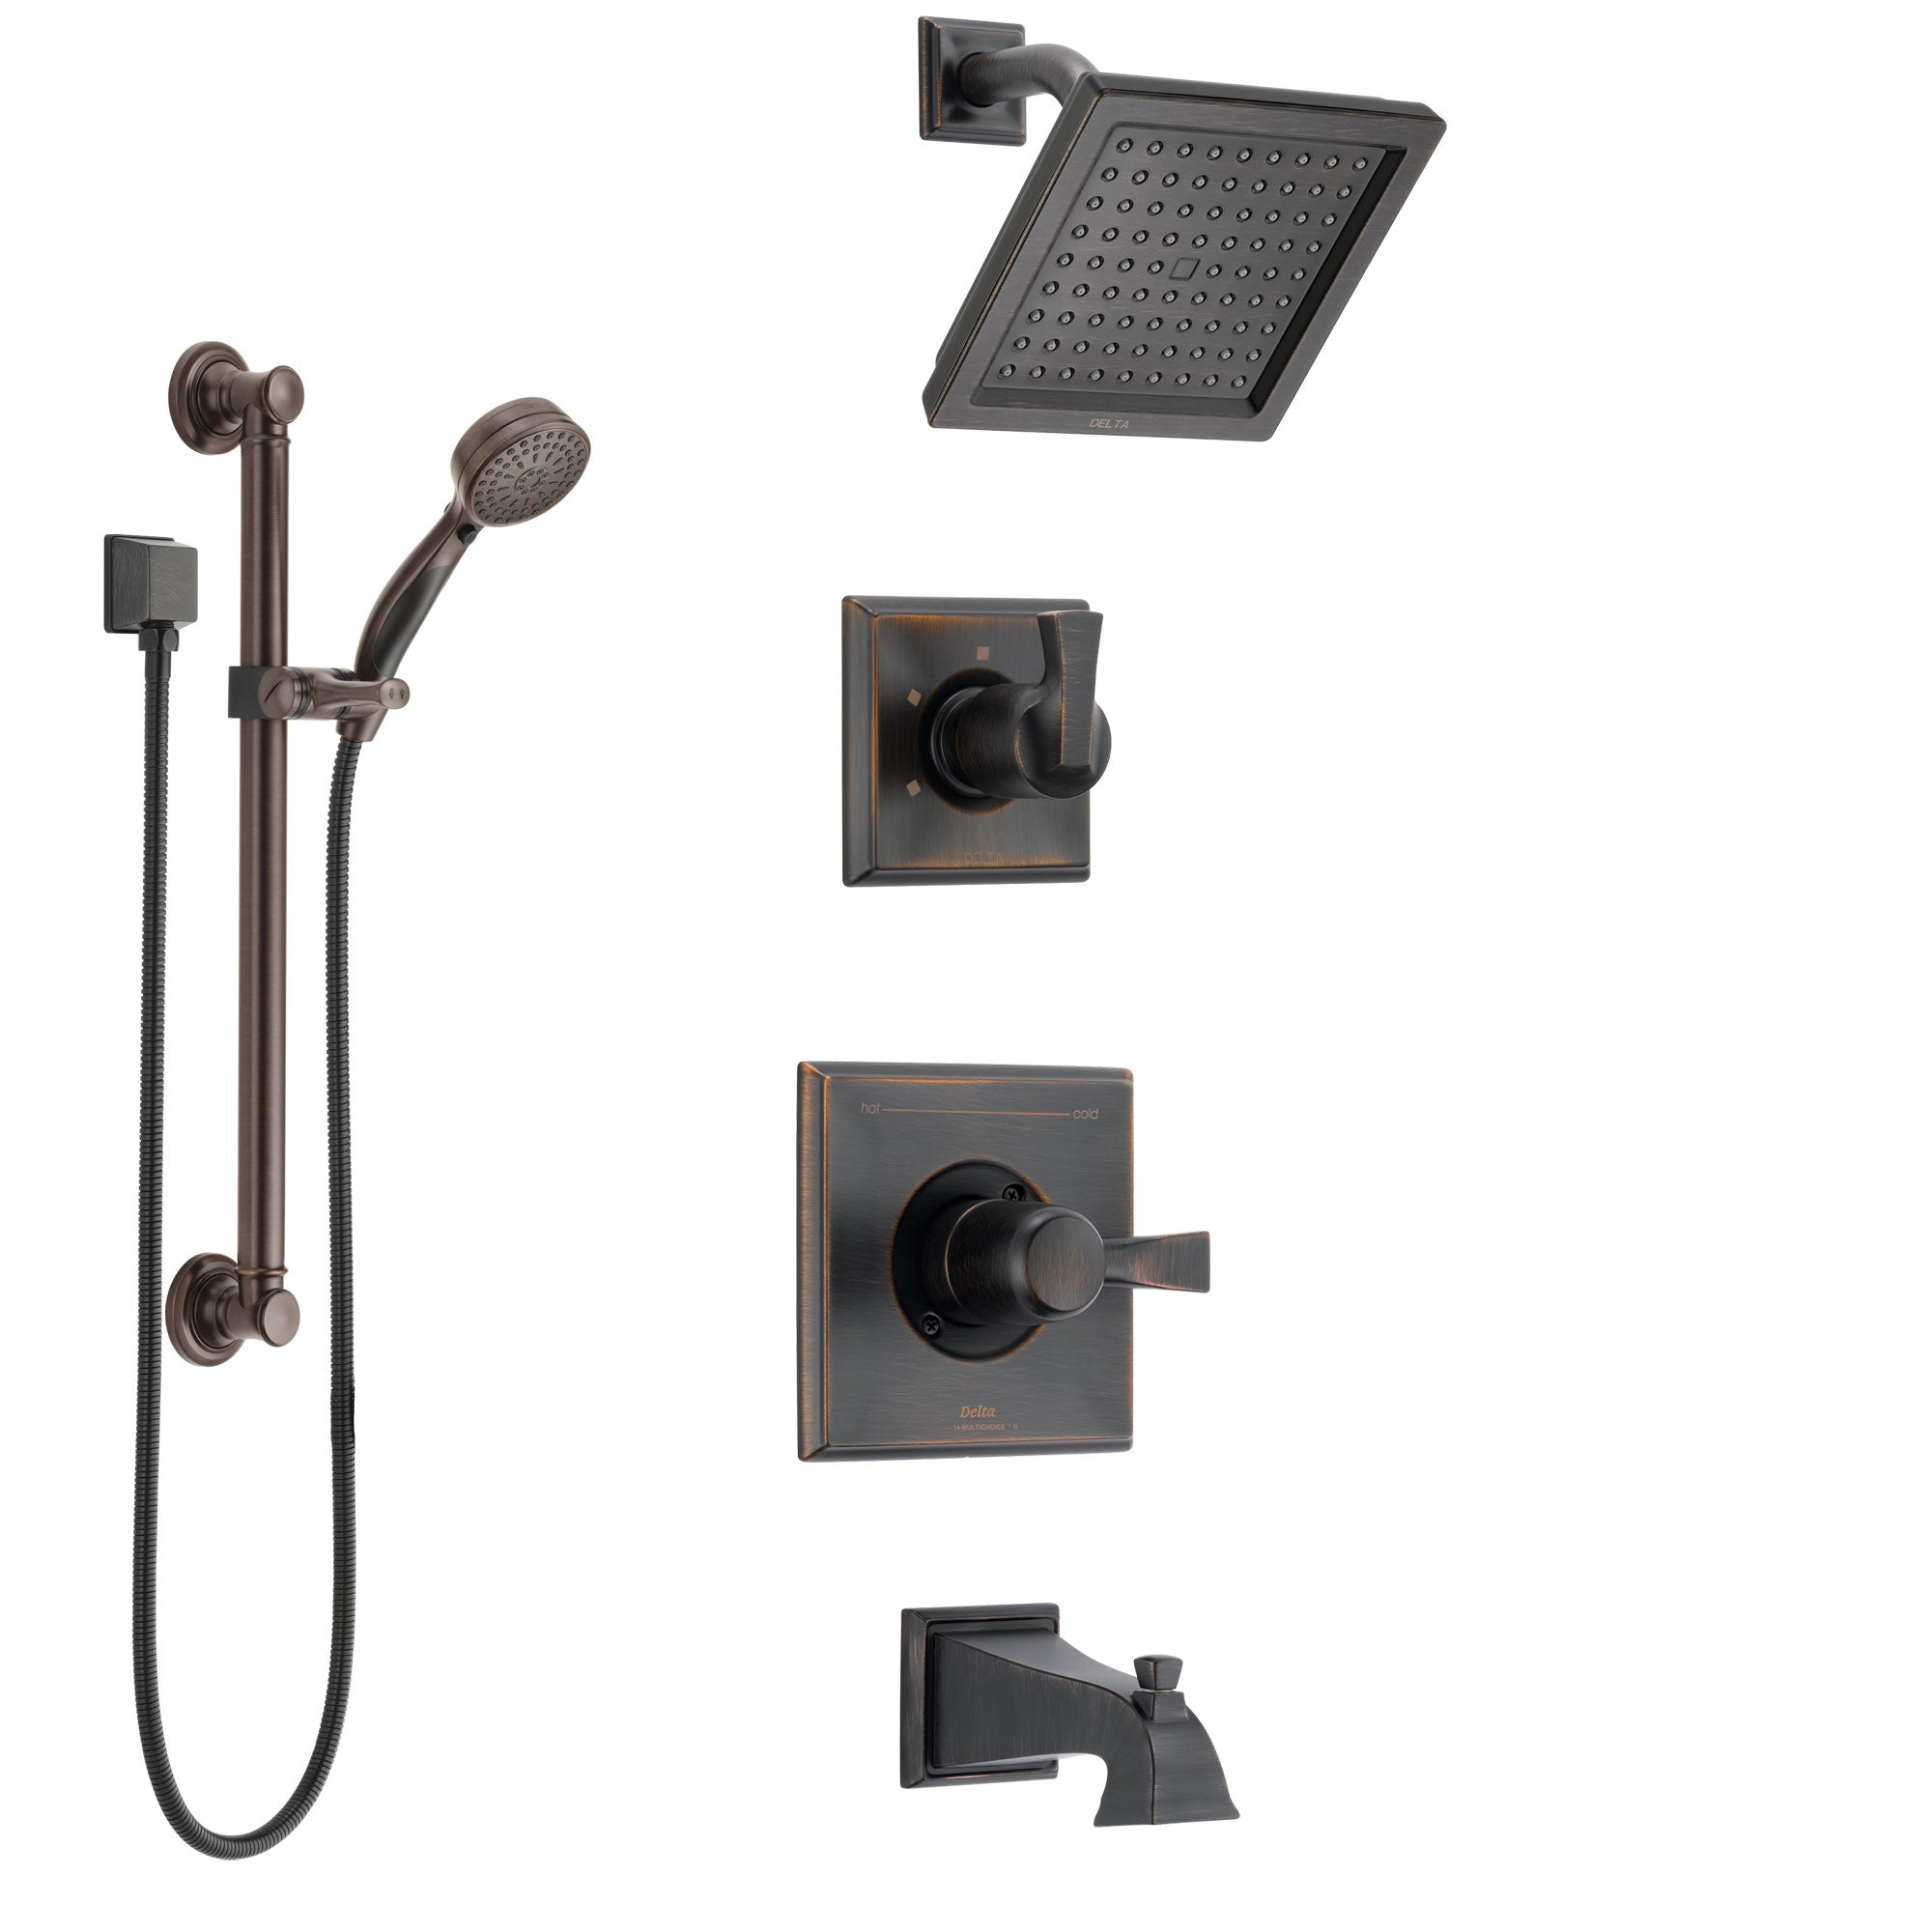 Delta Dryden Venetian Bronze Tub and Shower System with Control Handle, 3-Setting Diverter, Showerhead, and Hand Shower with Grab Bar SS144511RB3